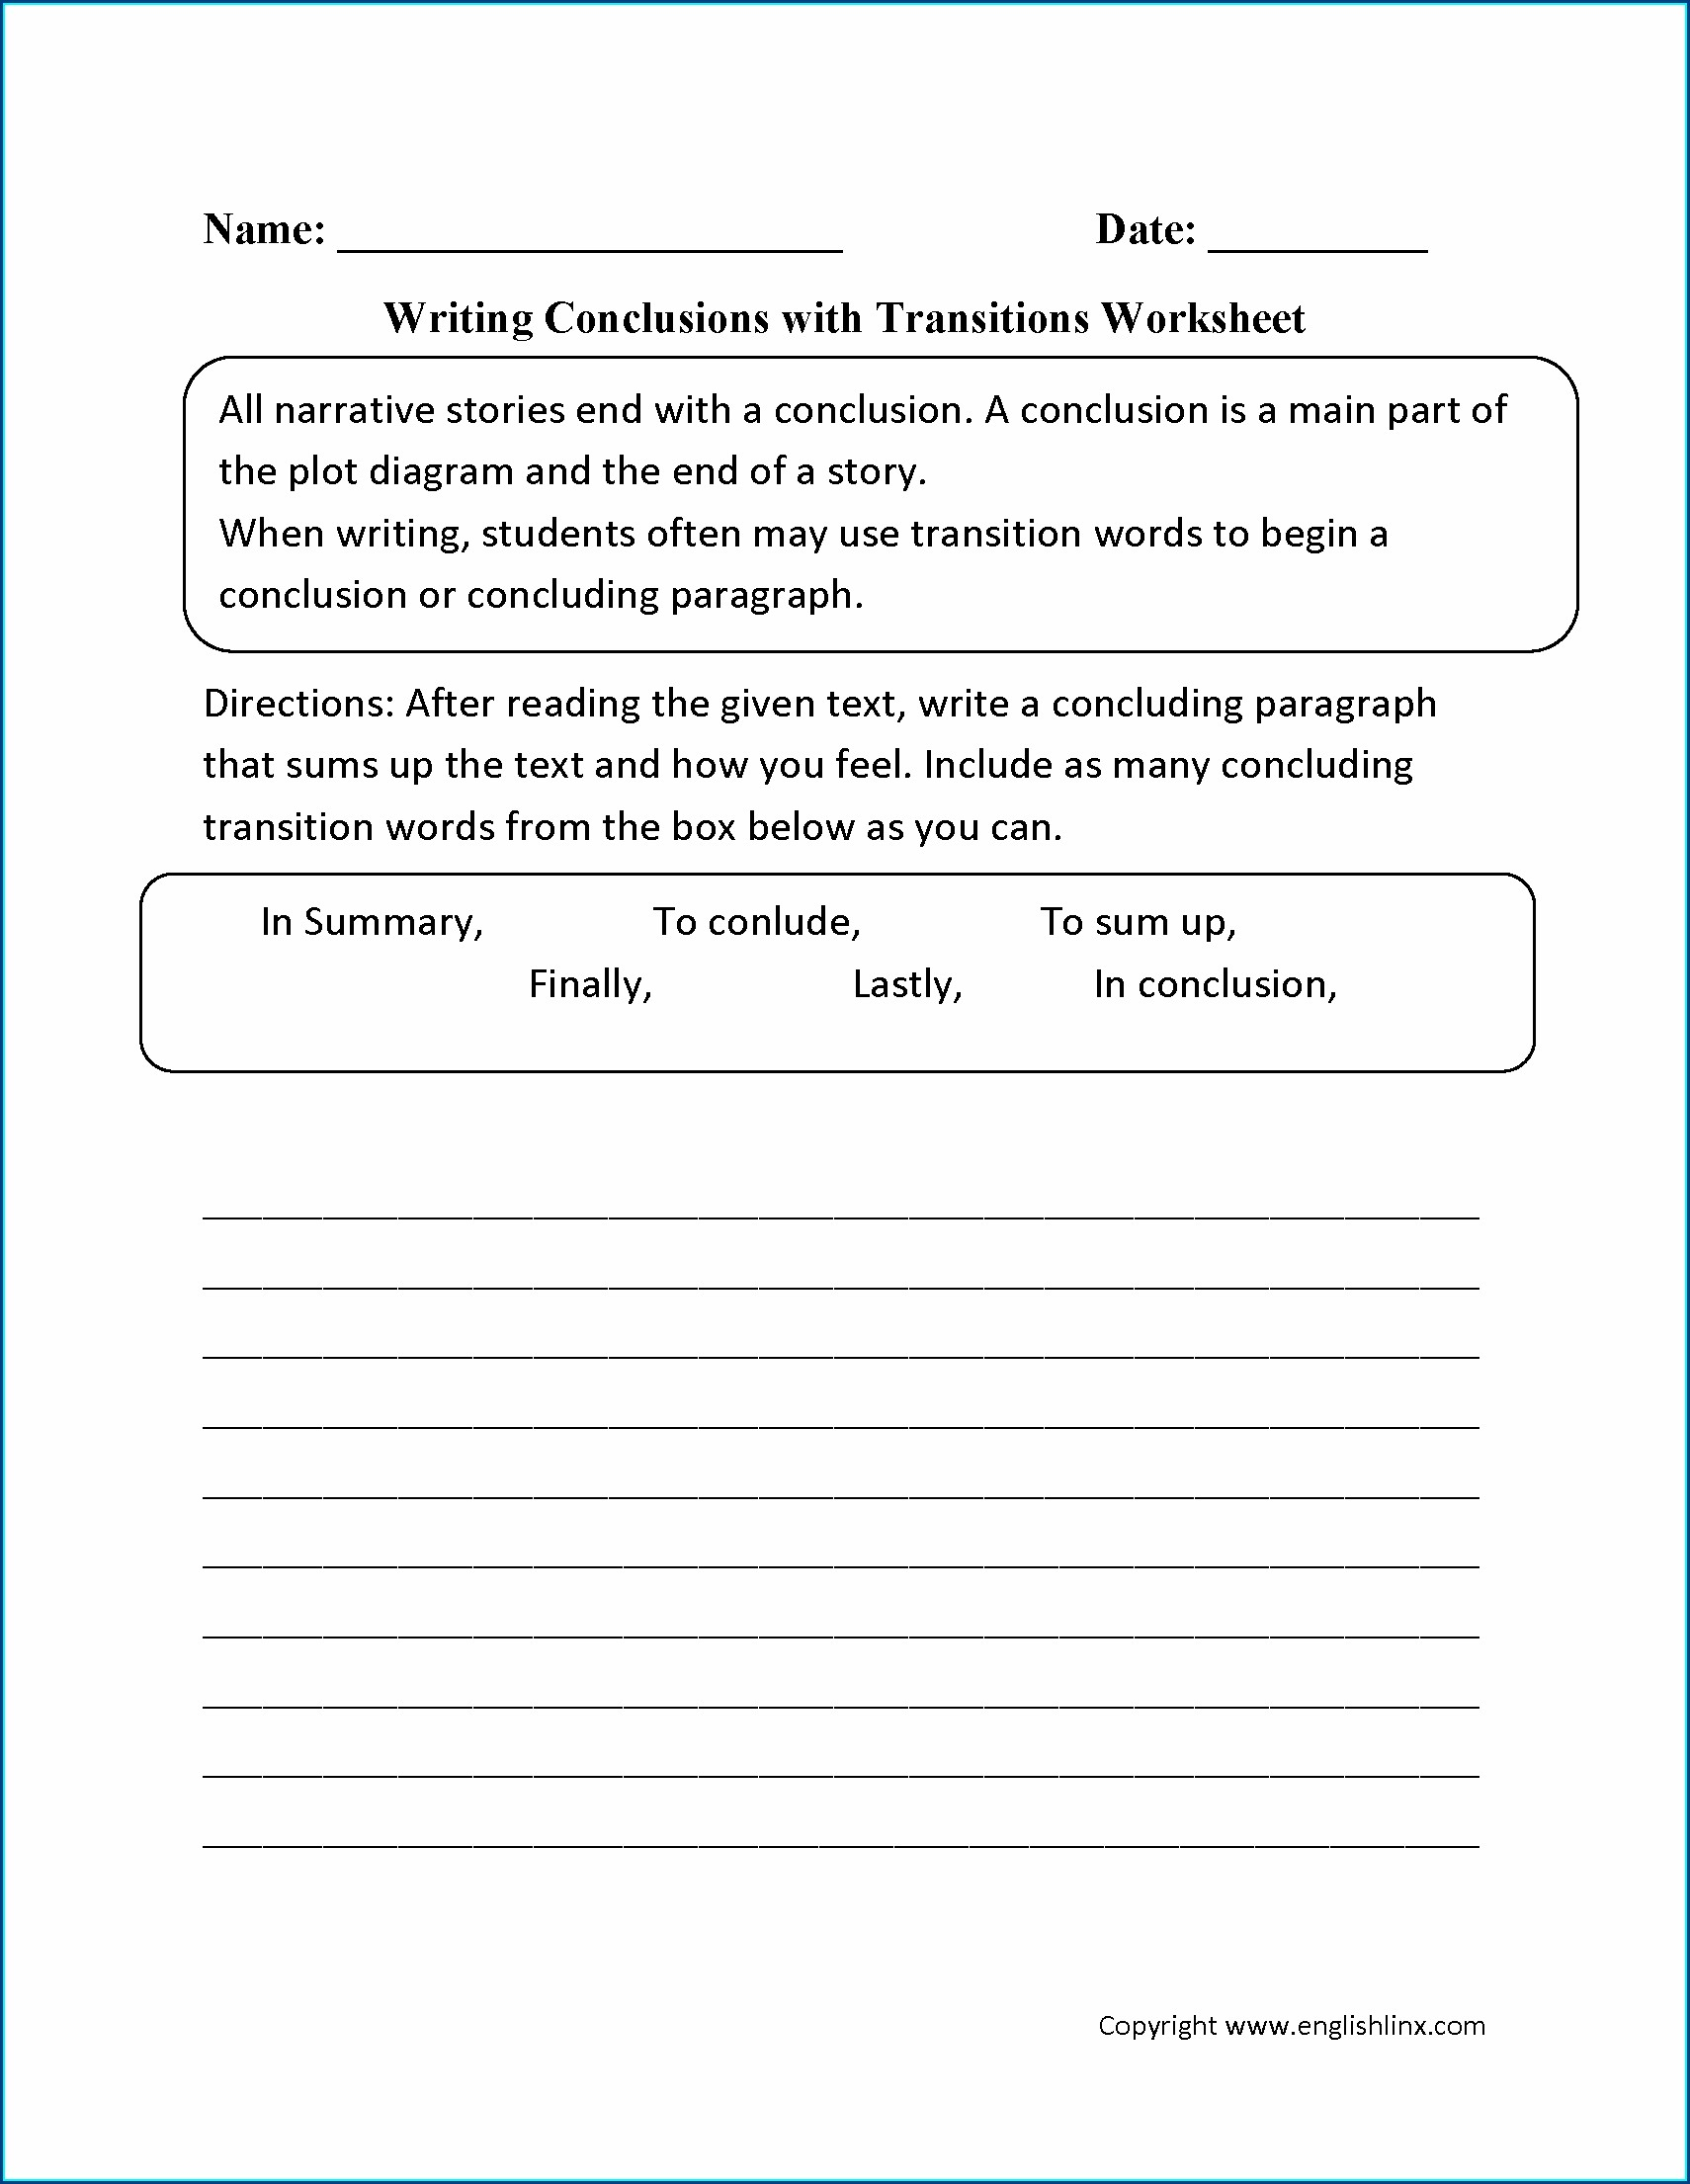 Using Transition Words Worksheet